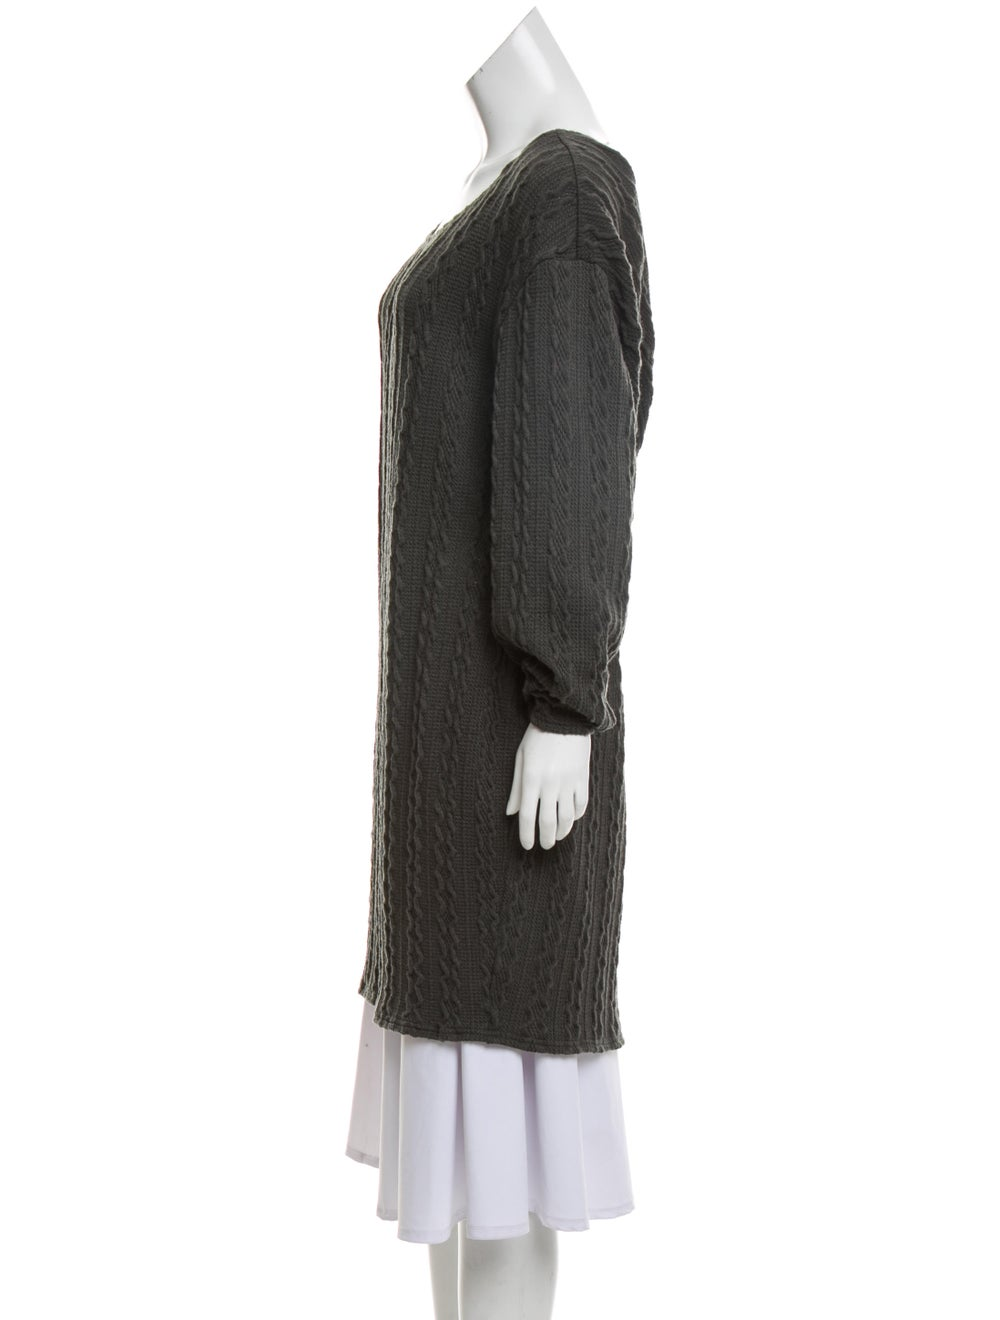 Walter Baker Cable-Knit Sweater Dress green - image 2